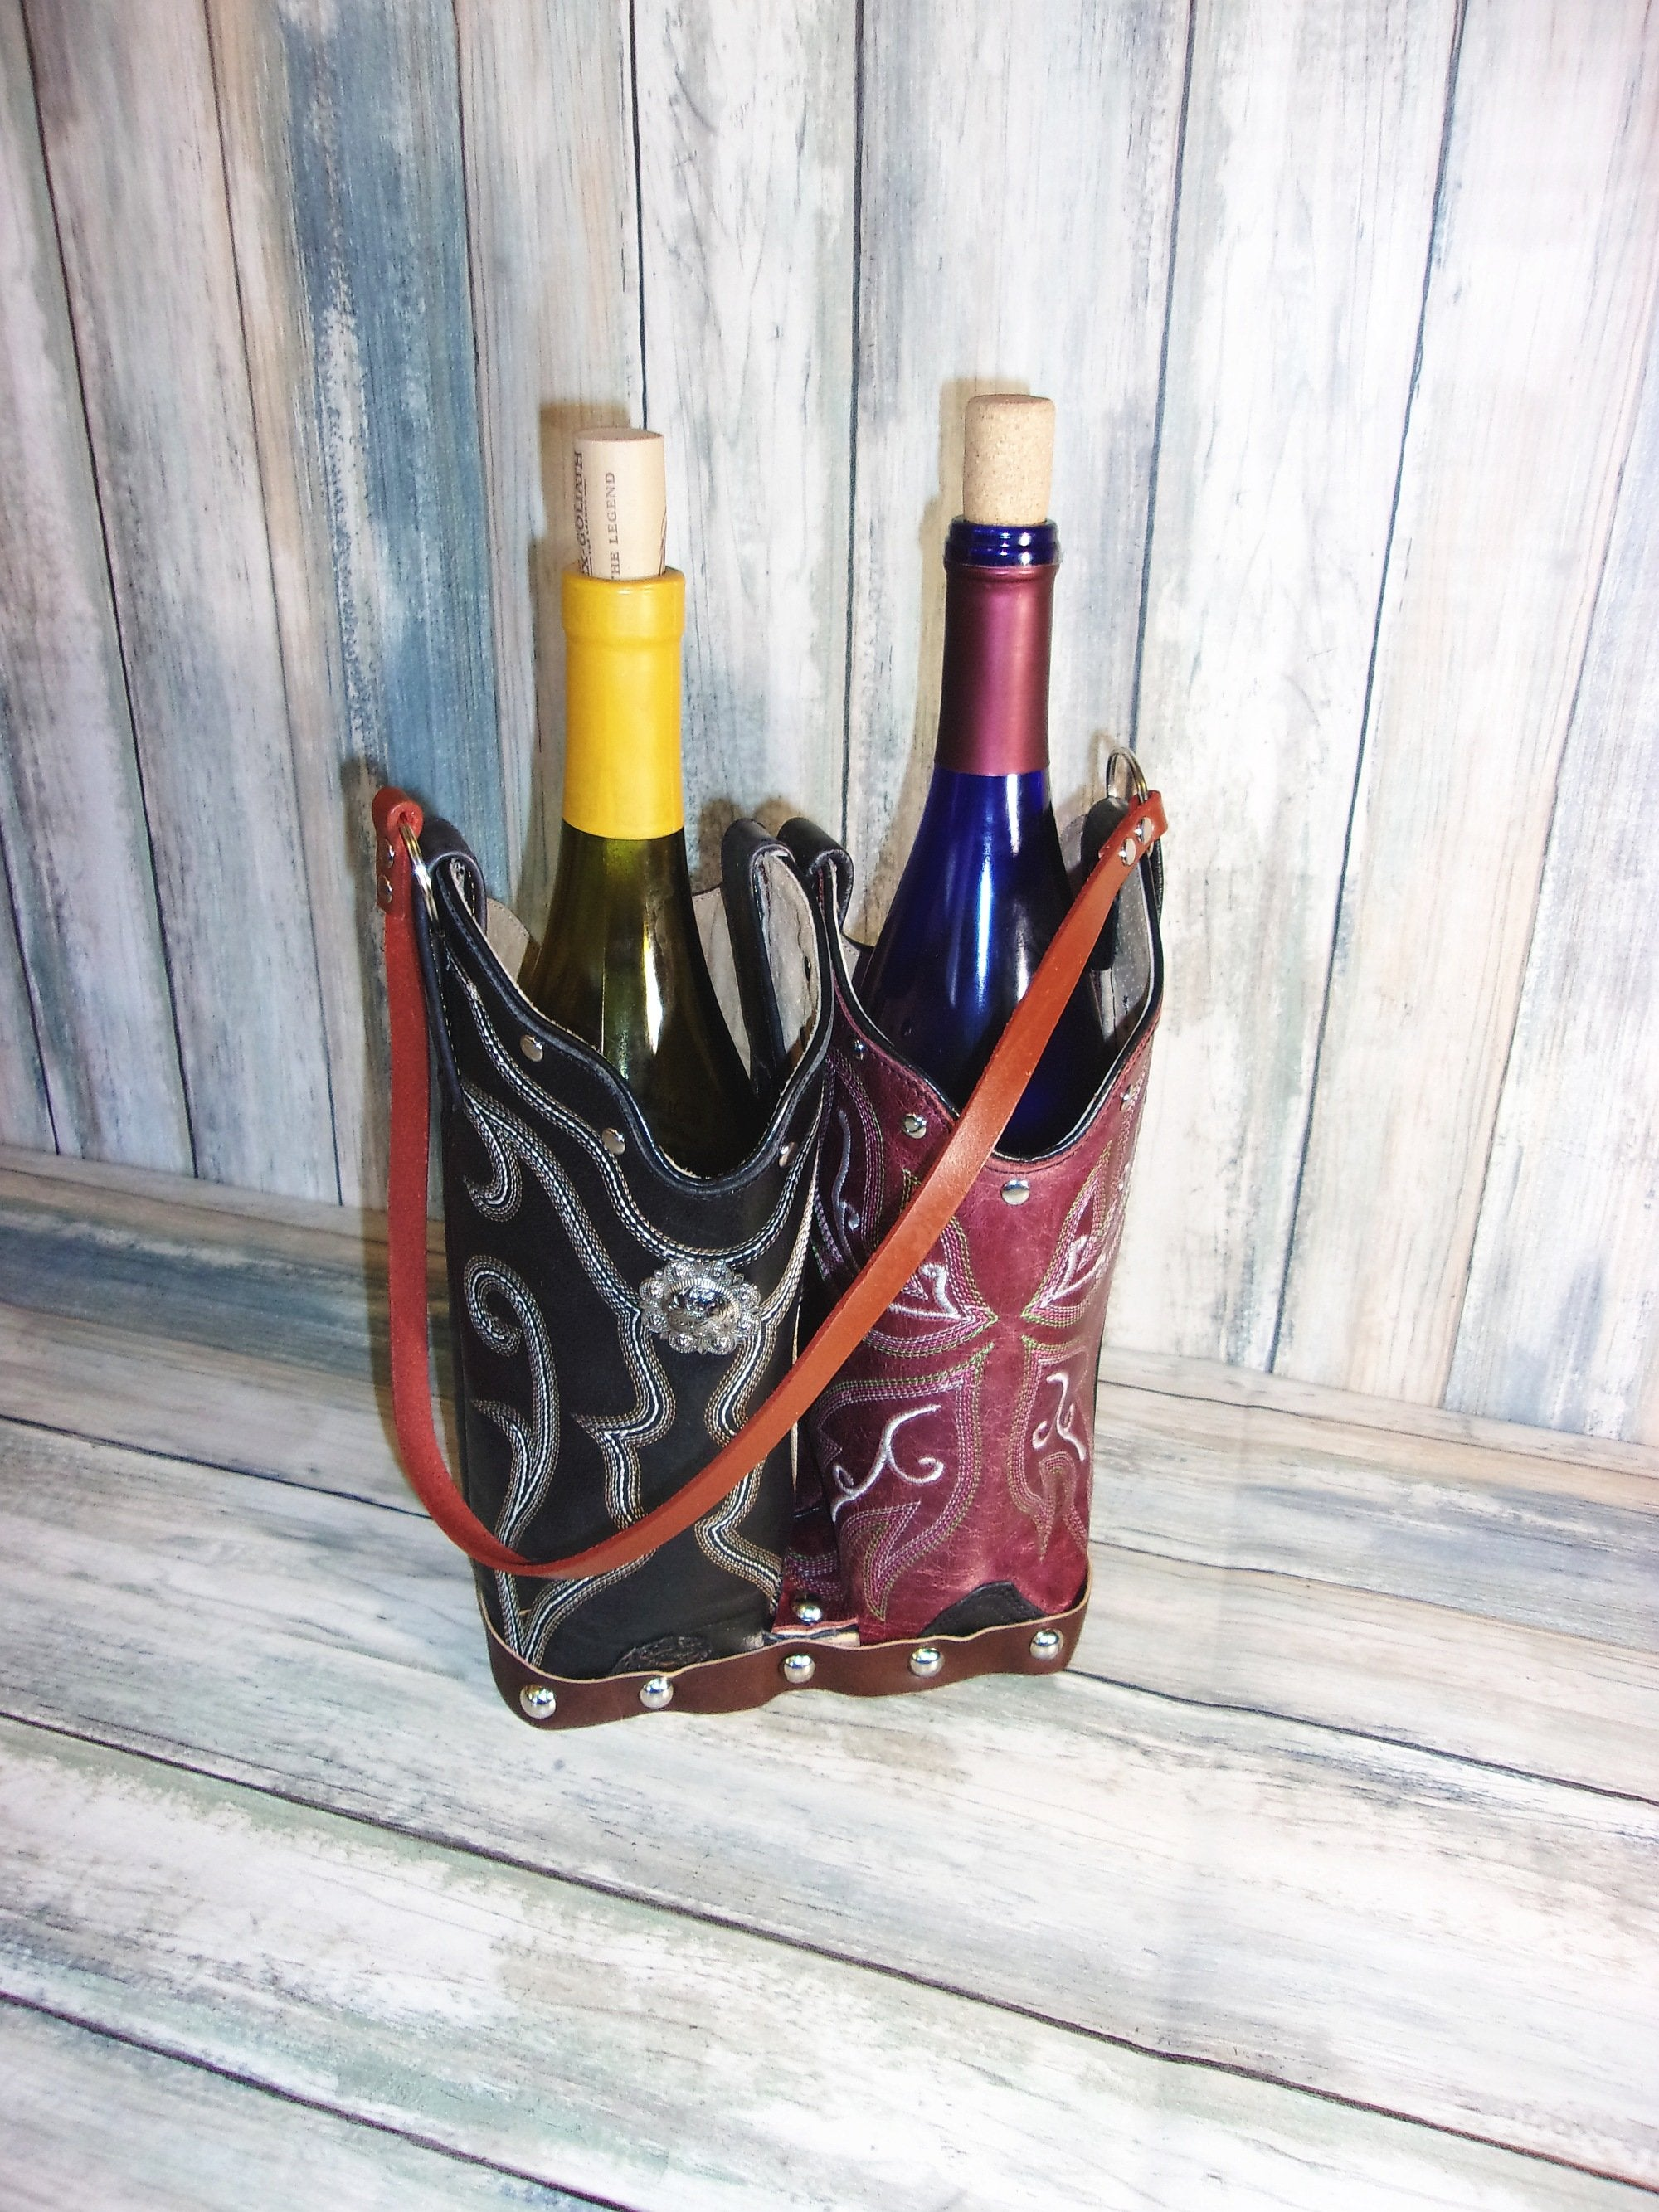 Double Cowboy Boot Leather Wine Tote PP47 - Distinctive Western Handbags, Purses and Totes